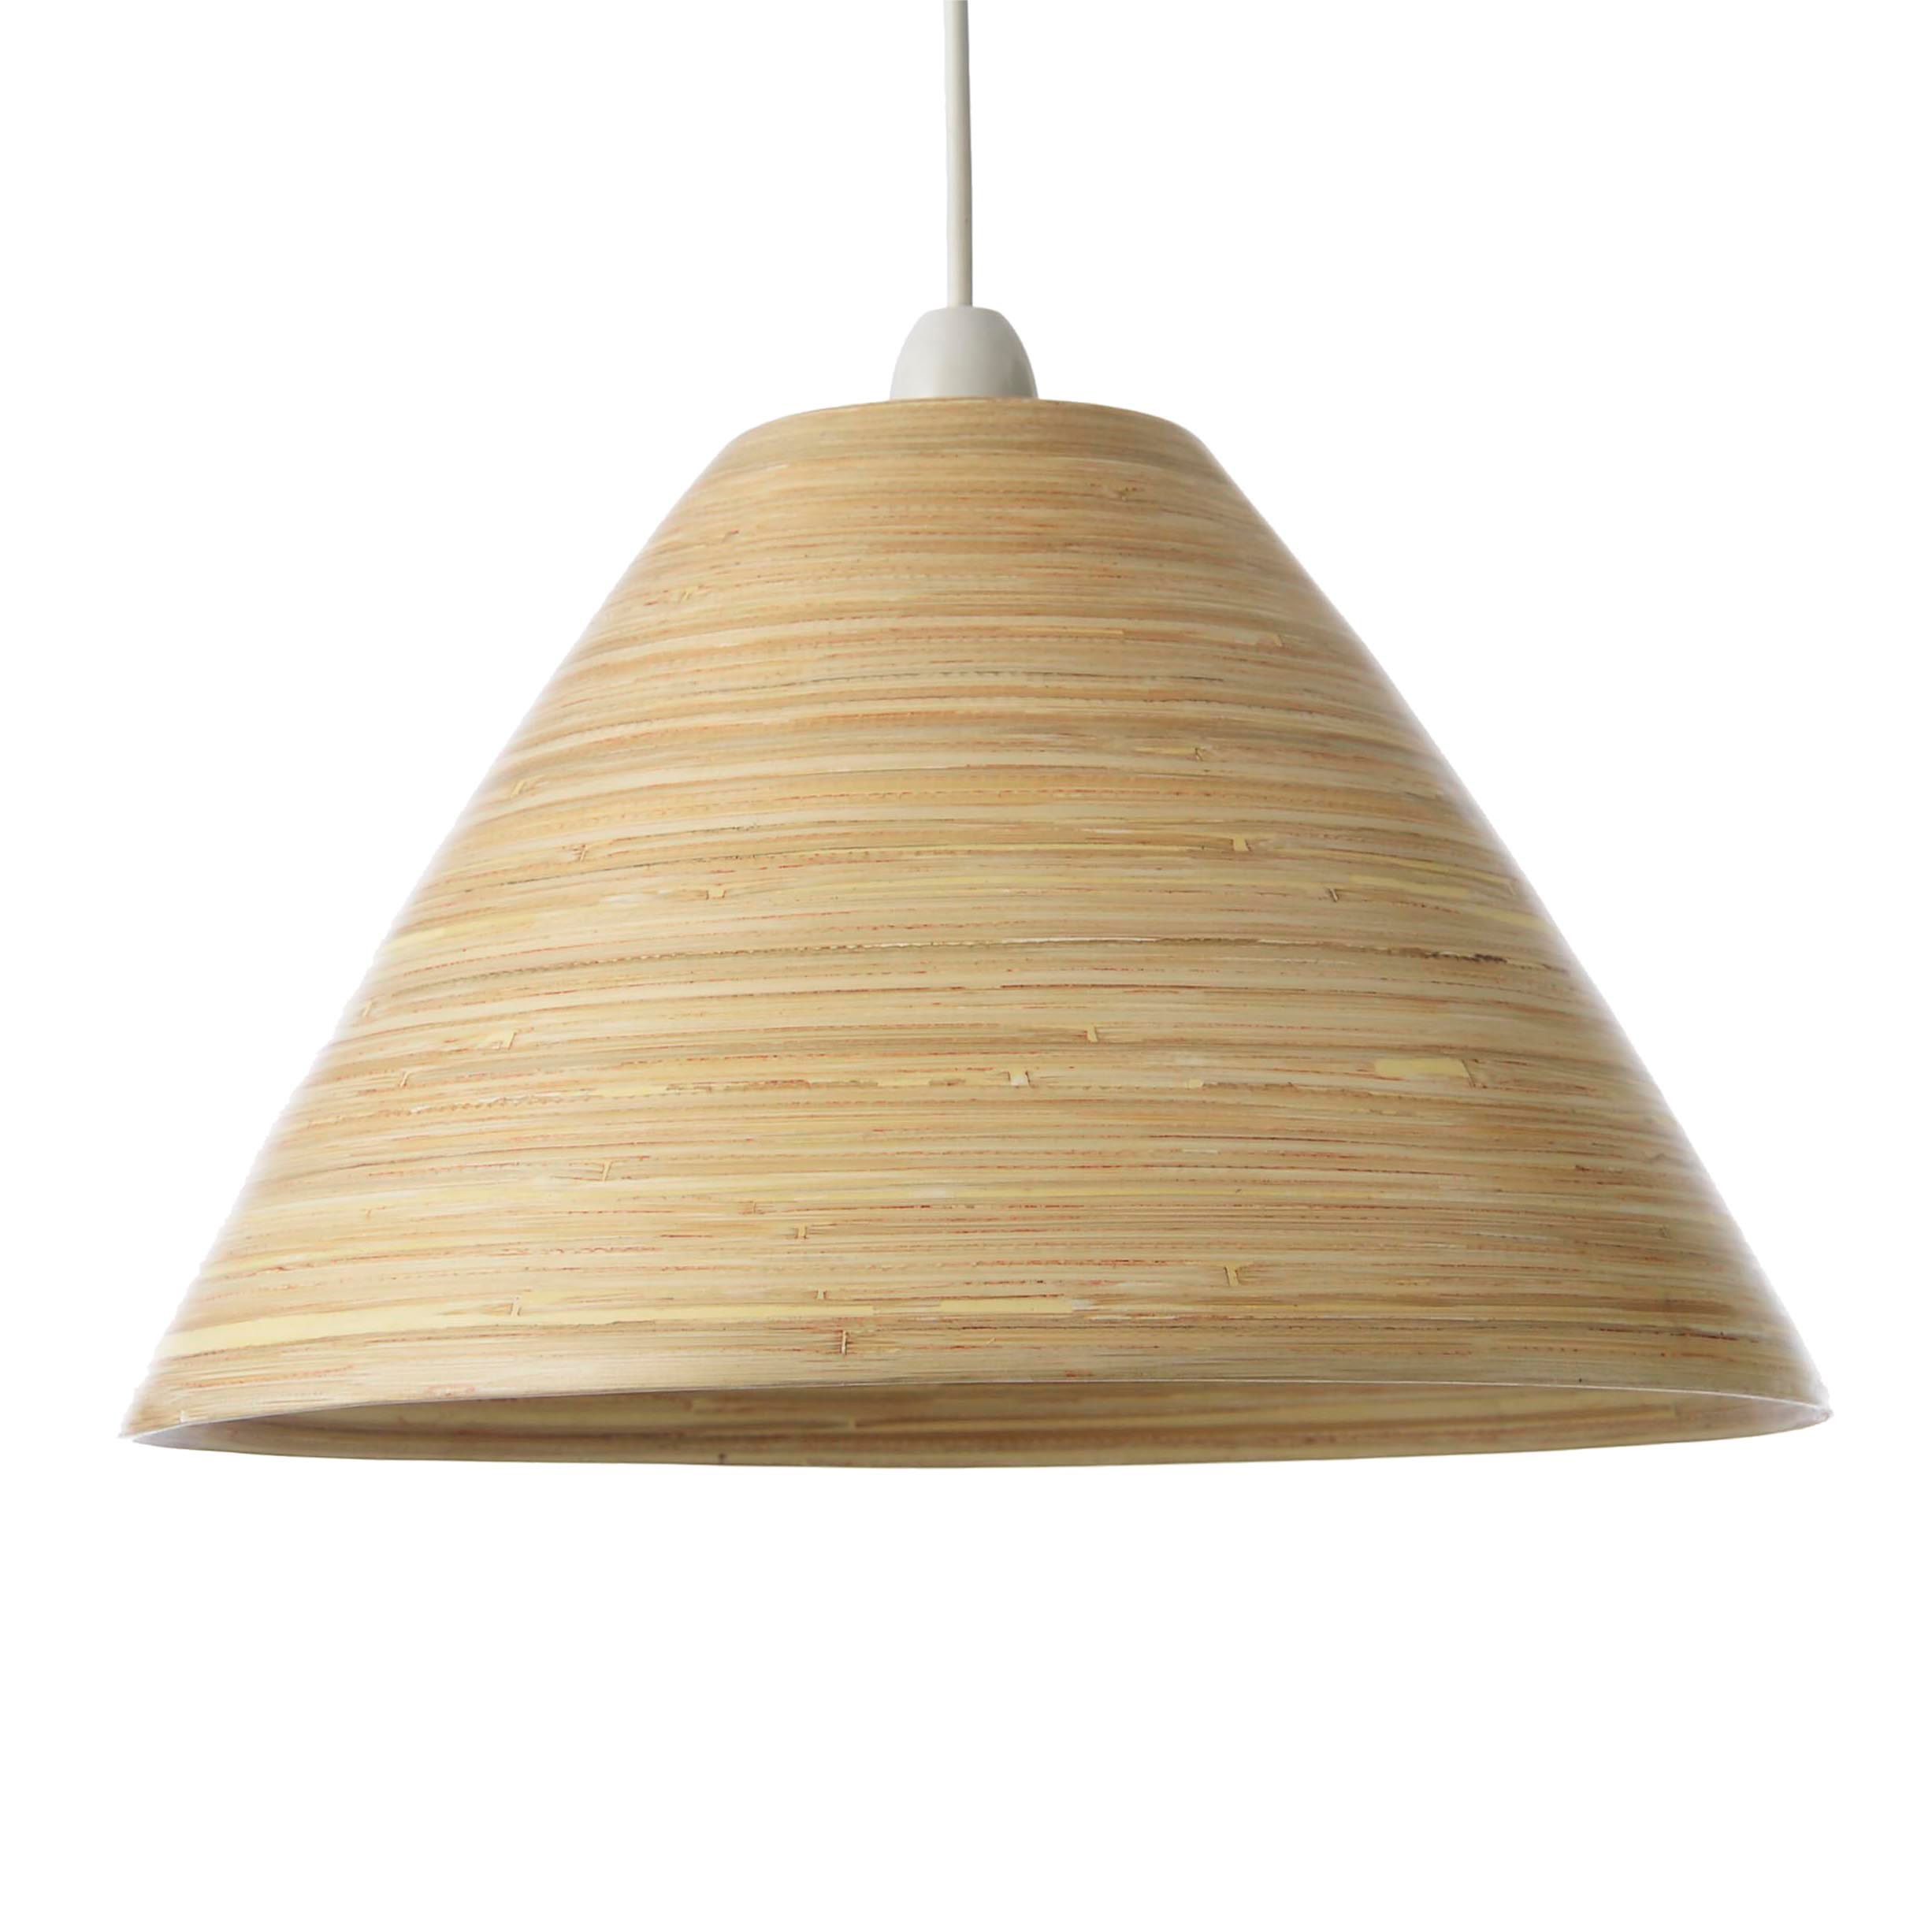 Colours cruse natural bamboo lamp shade d350mm natural lamps colours cruse natural bamboo lamp shade d350mm mozeypictures Gallery